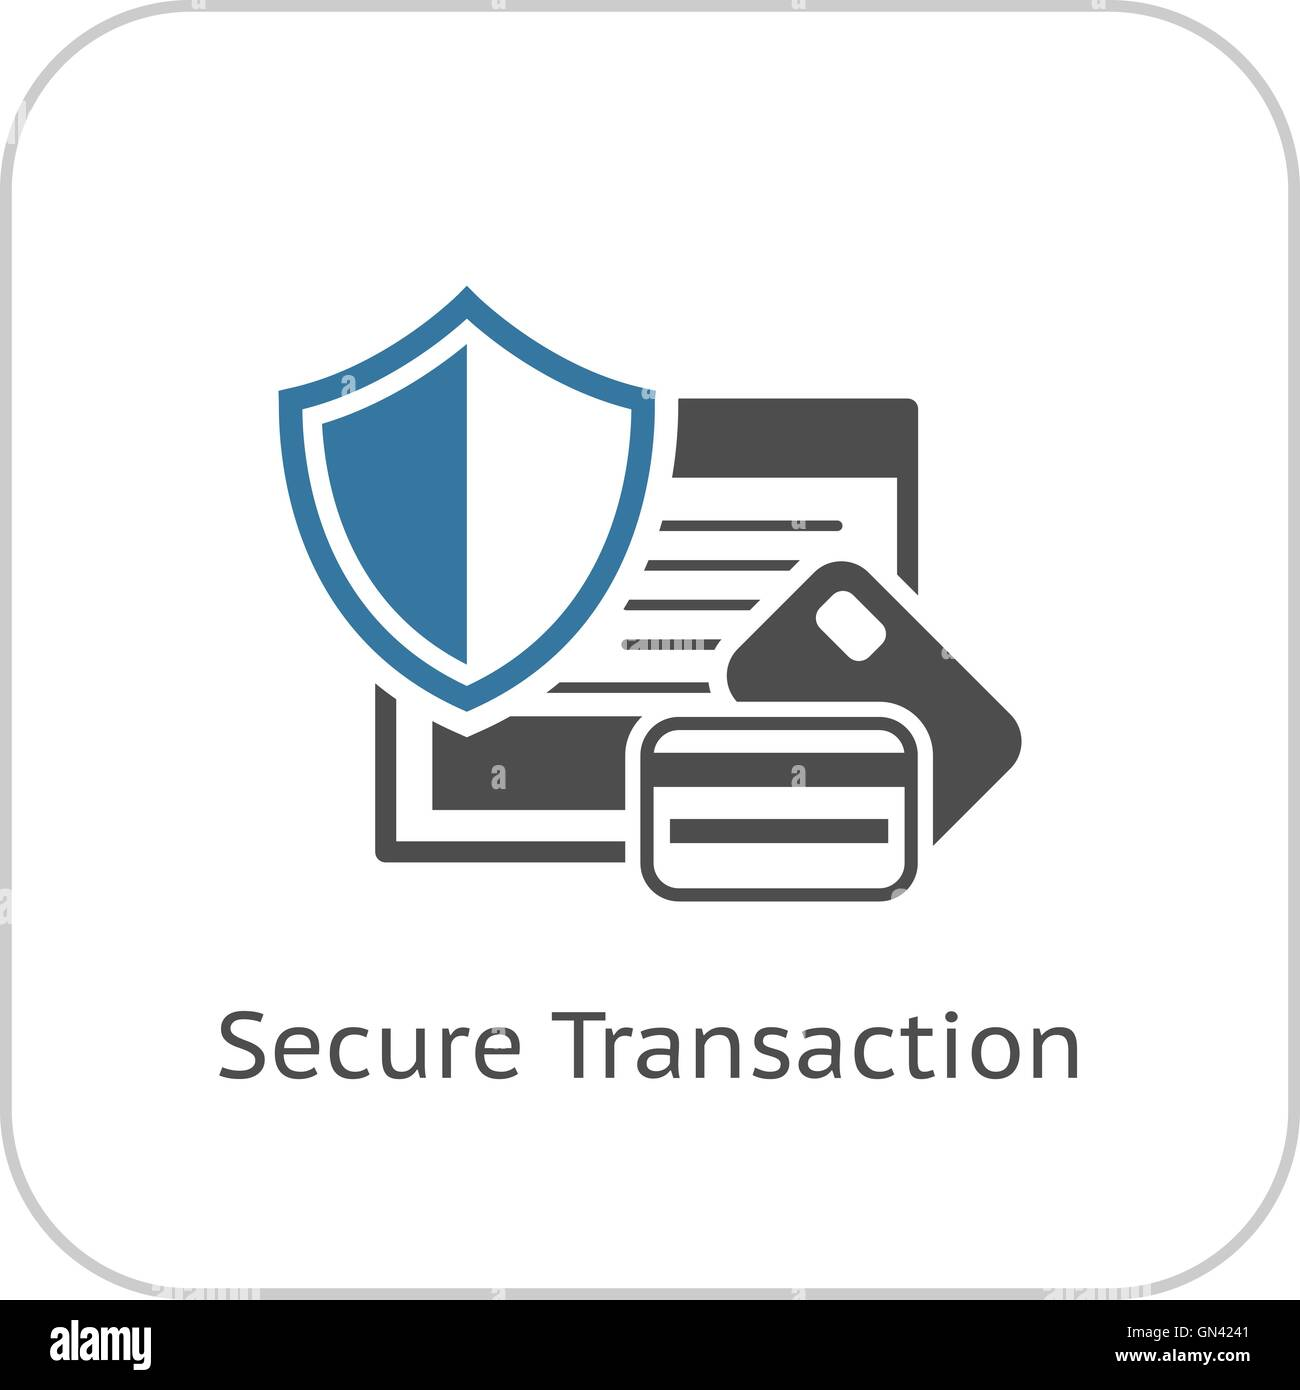 Secure Transaction Icon. Flat Design. - Stock Image